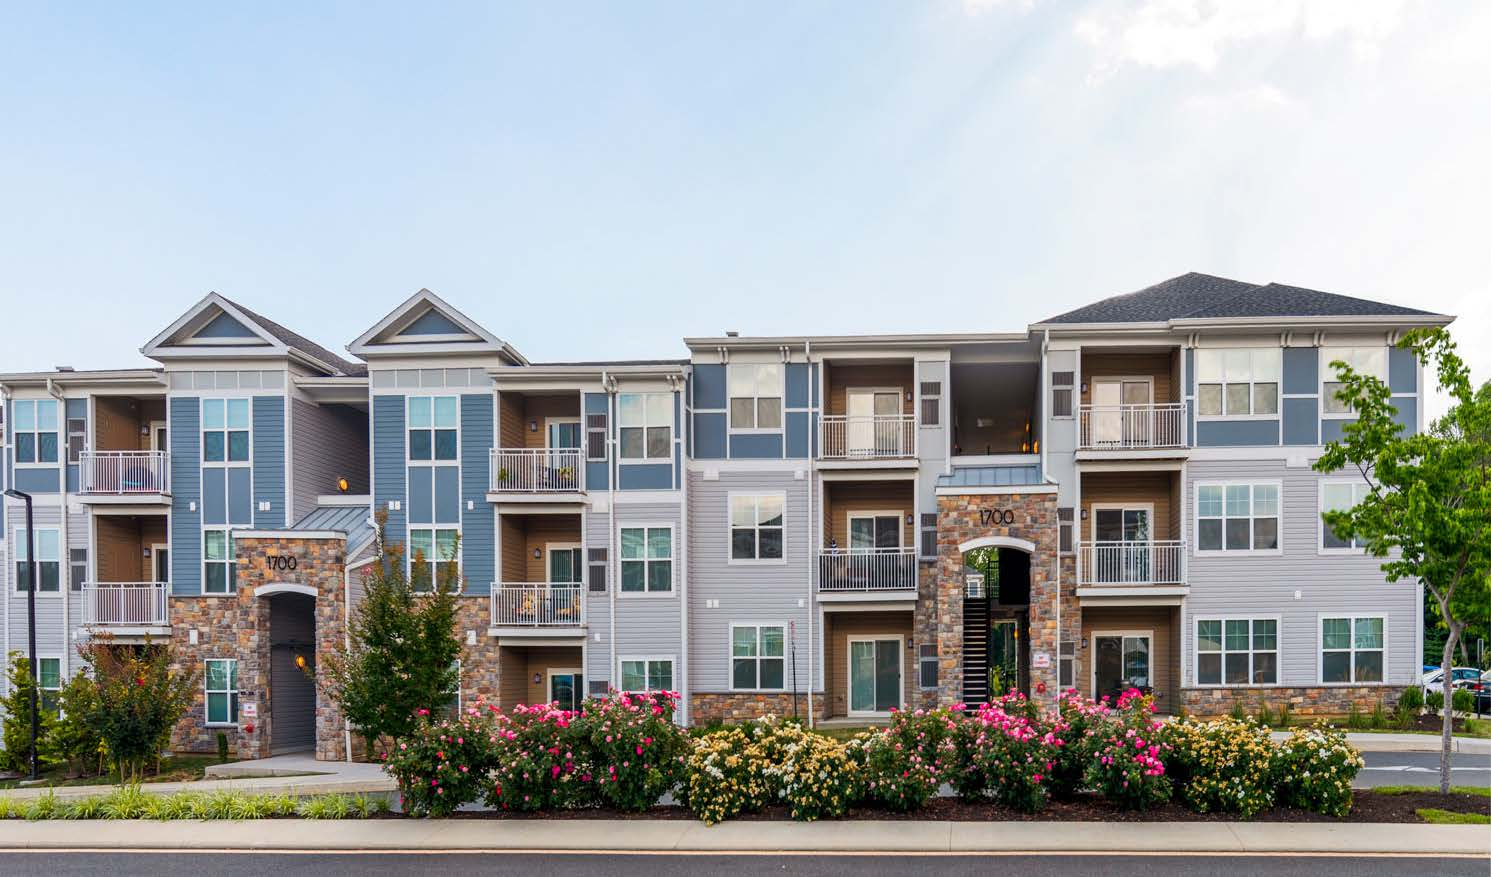 emblem exterior with trees and flowers - luxury apartments in newark de